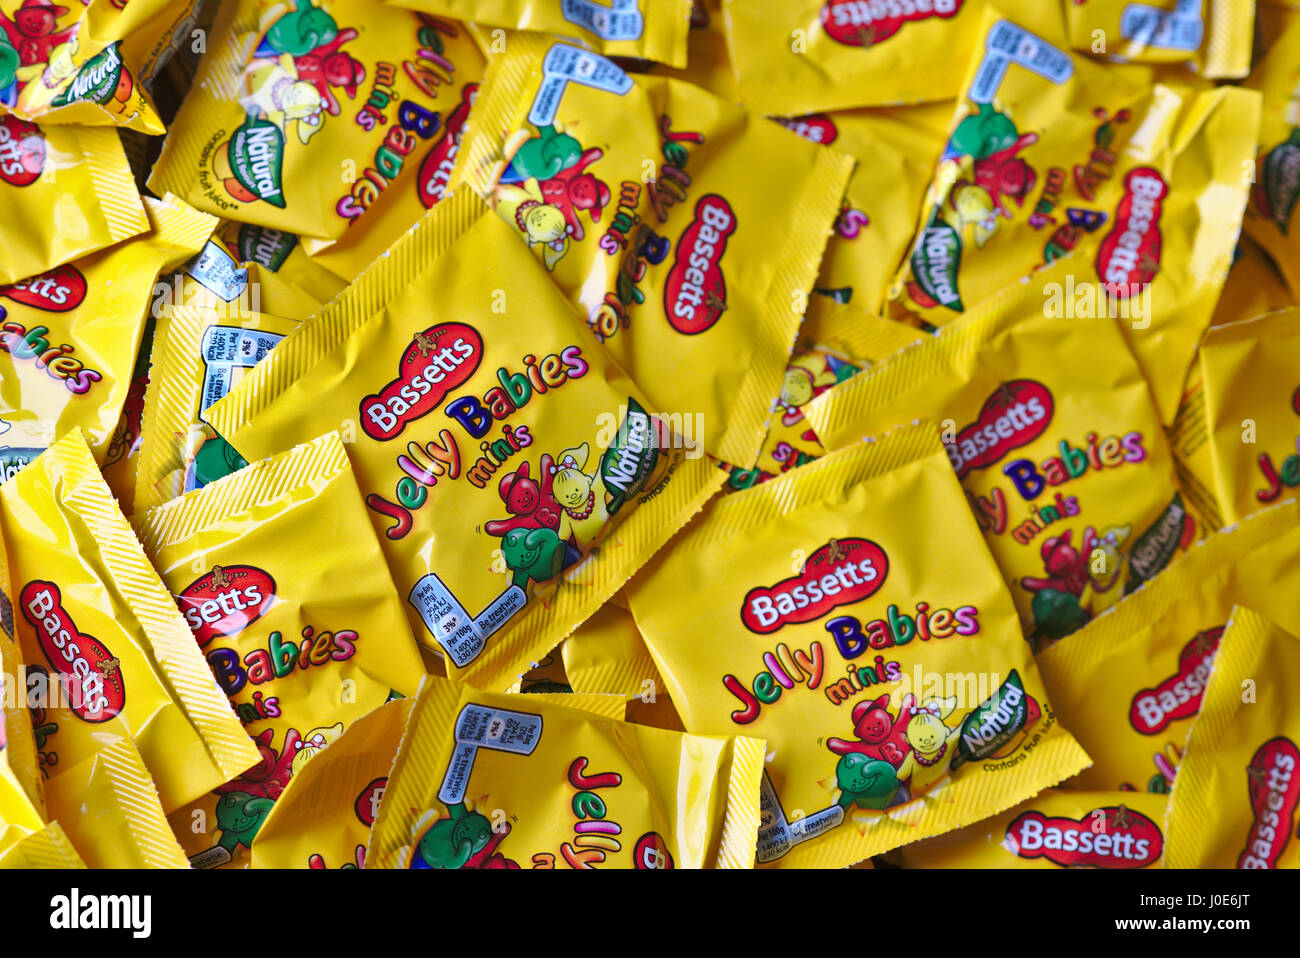 Bassetts Jelly Babies (mini) in a pile Stock Photo